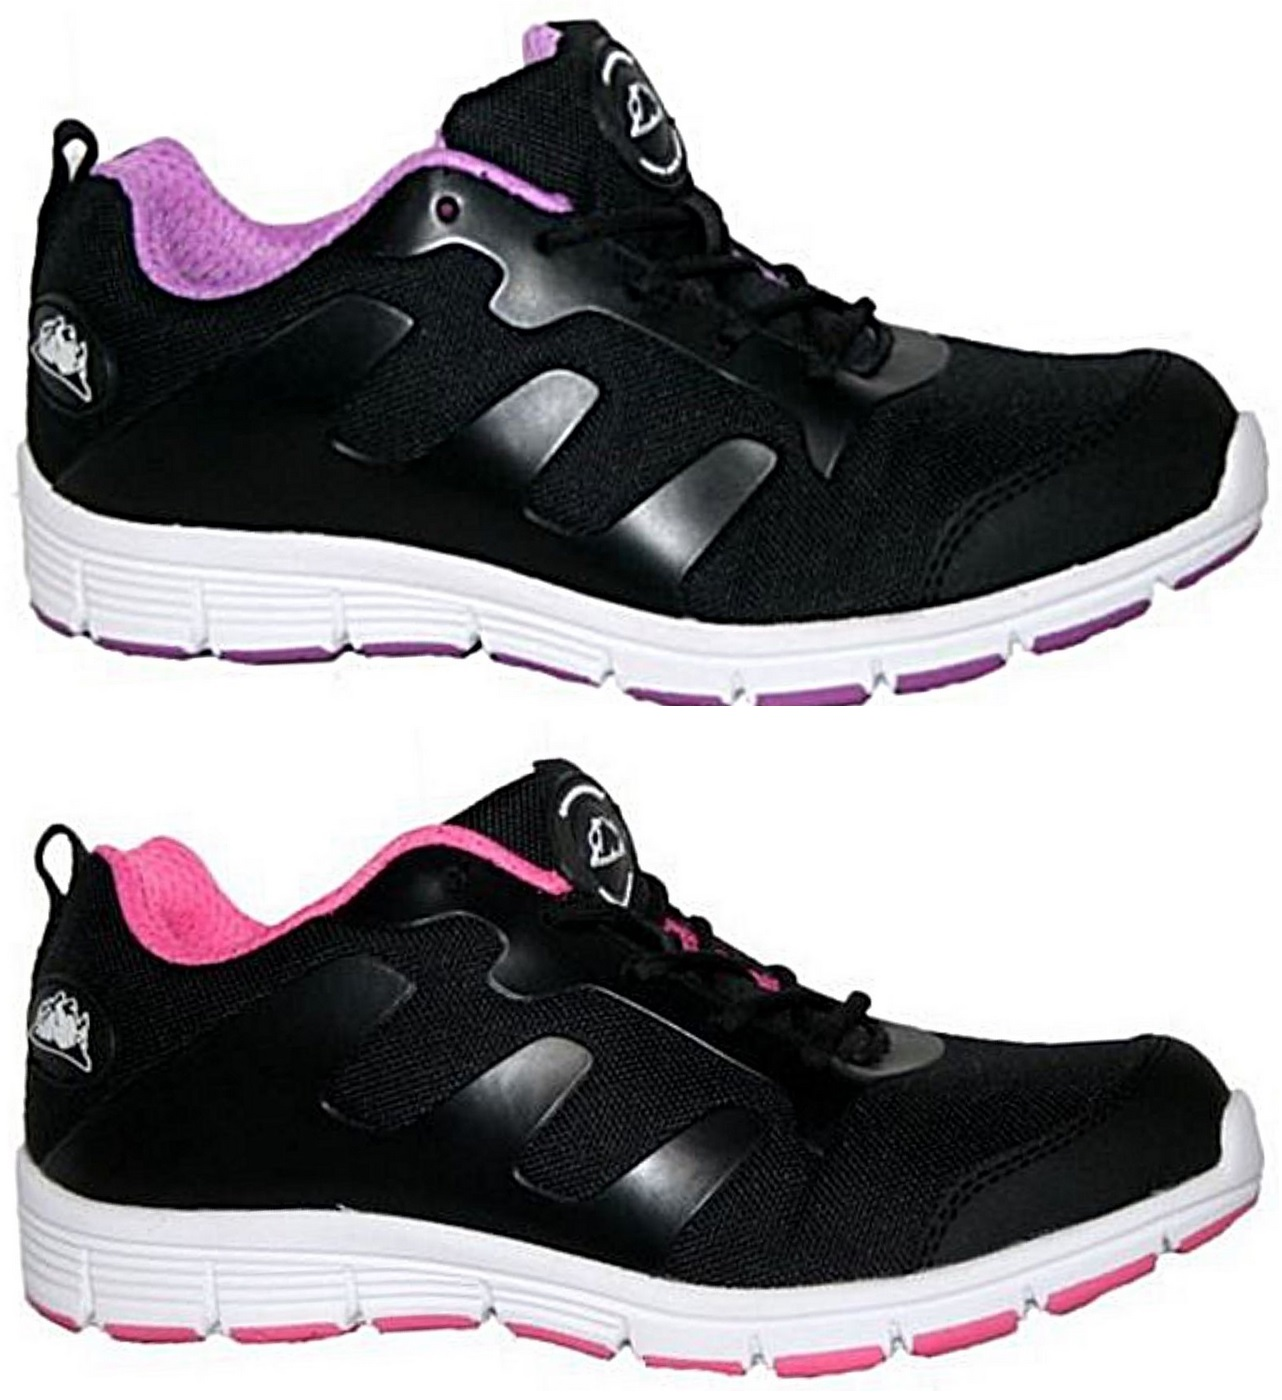 Ladies Womens Groundwork Steel Toe Cap Safety Work Shoes